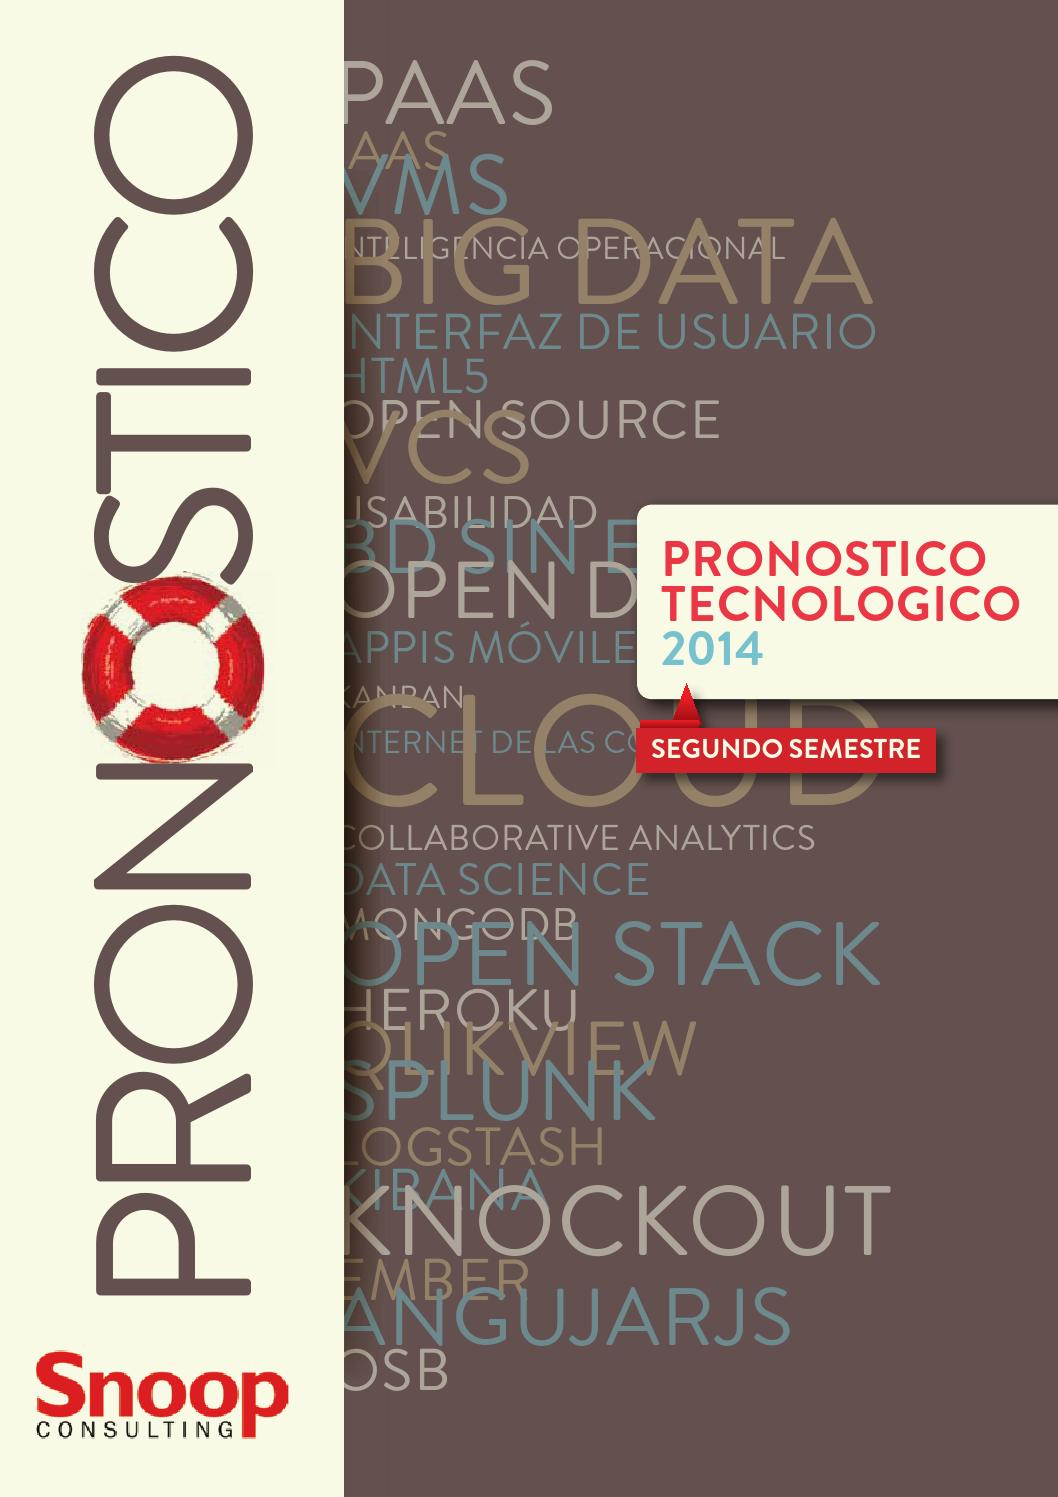 Pronóstico Tecnológico- Snoop Consulting by snoopconsulting - issuu